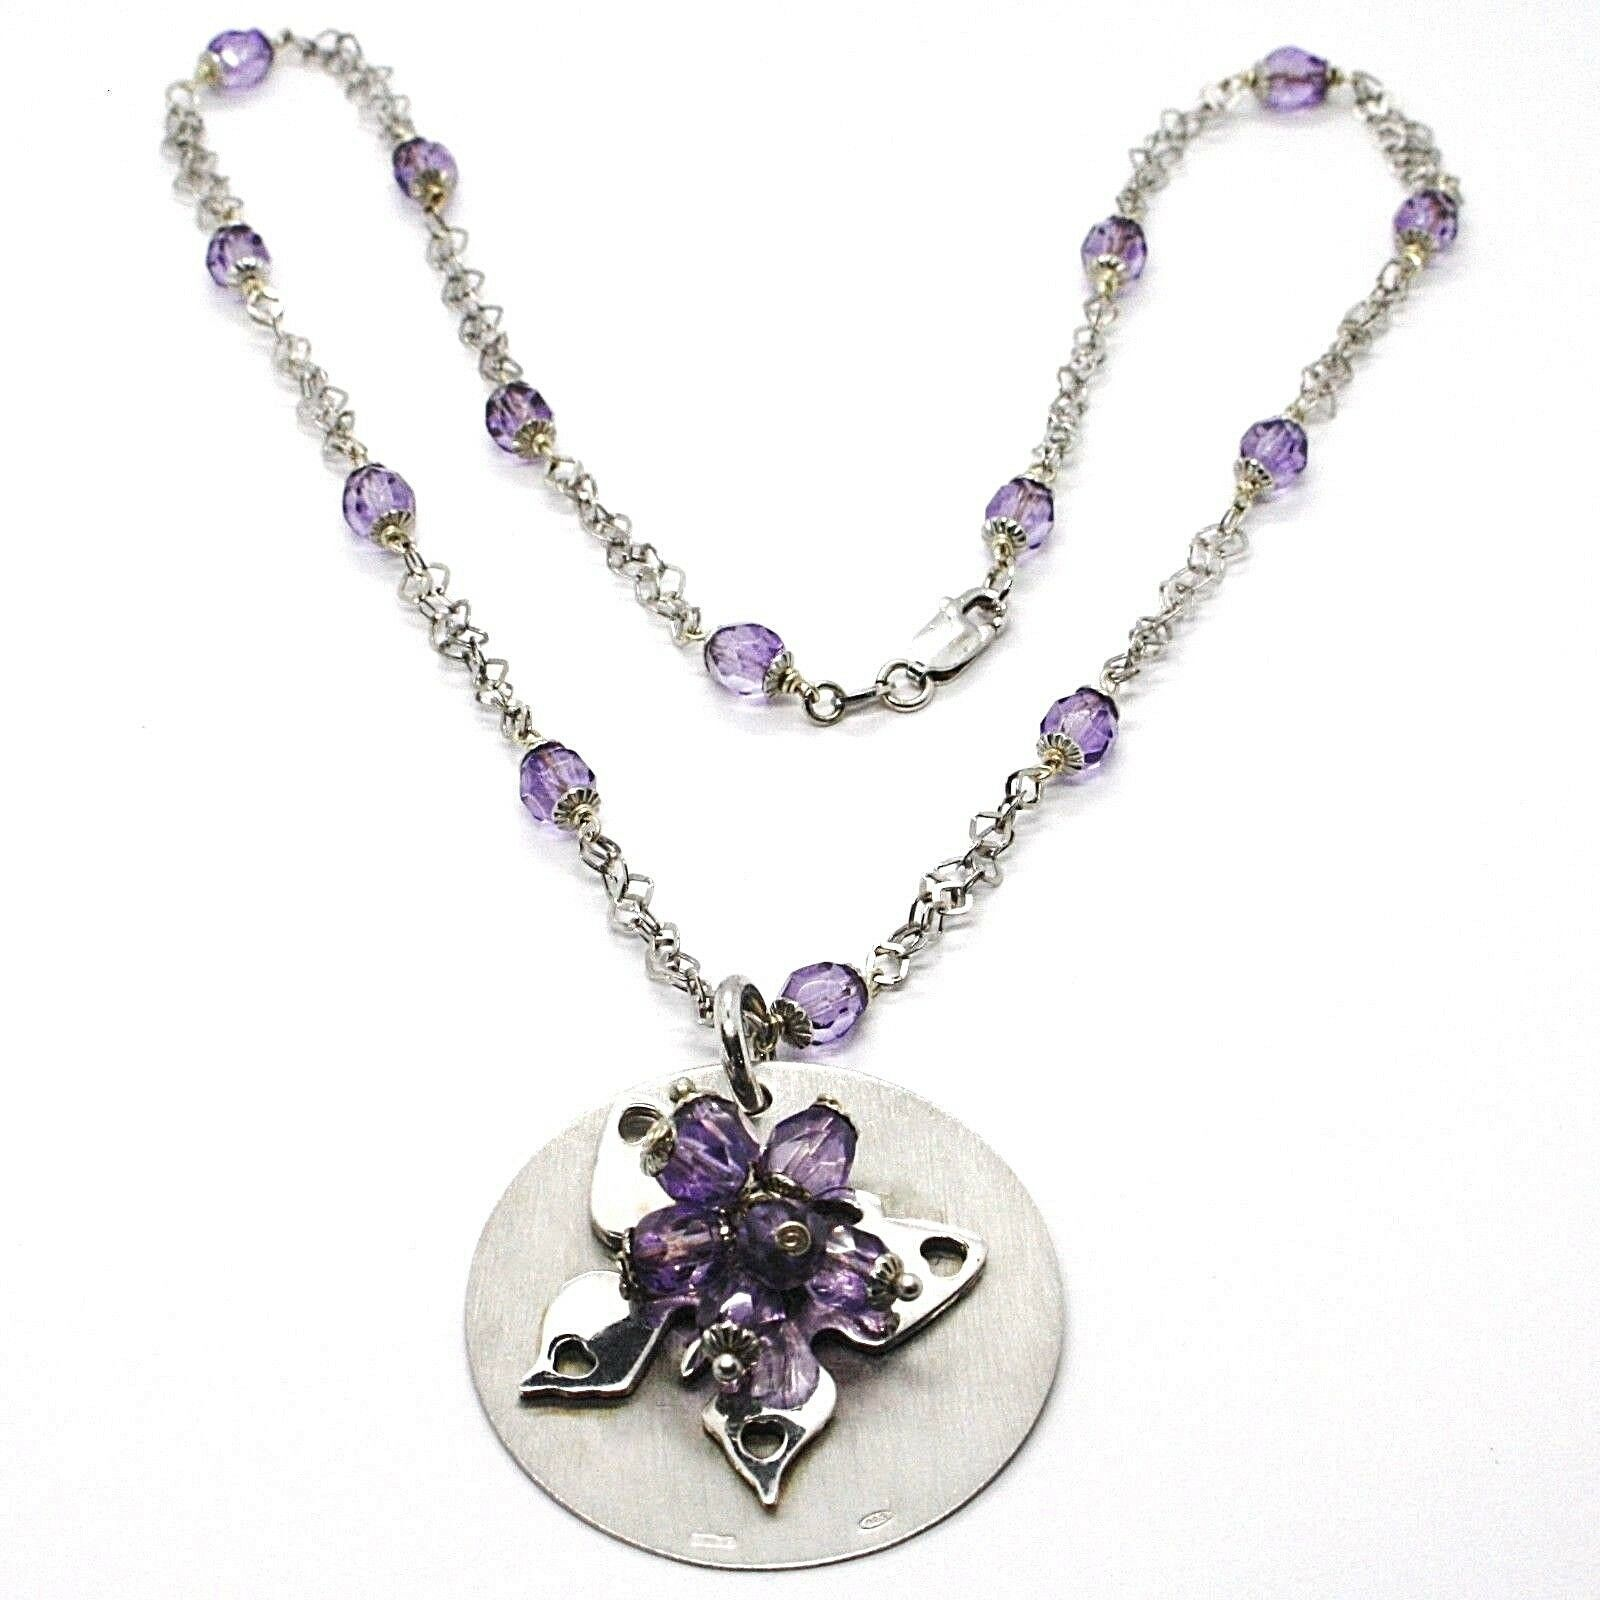 Necklace Silver 925, Disco Pendant, Butterfly Superimposed, Spheres Purple